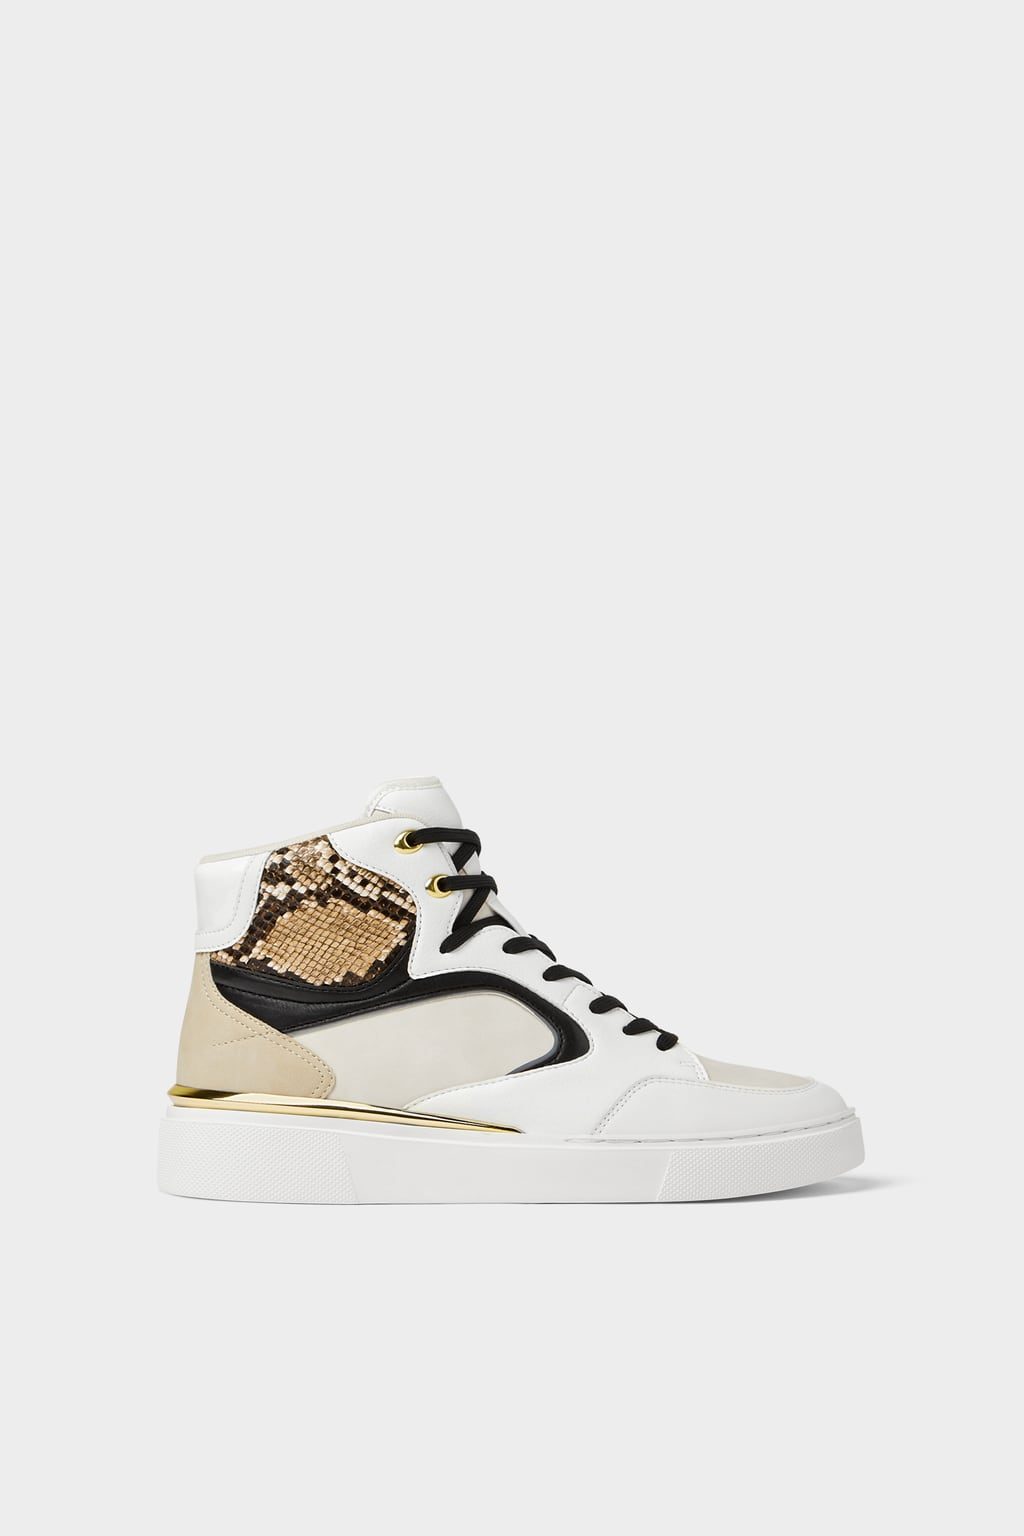 White High Tops by Zara